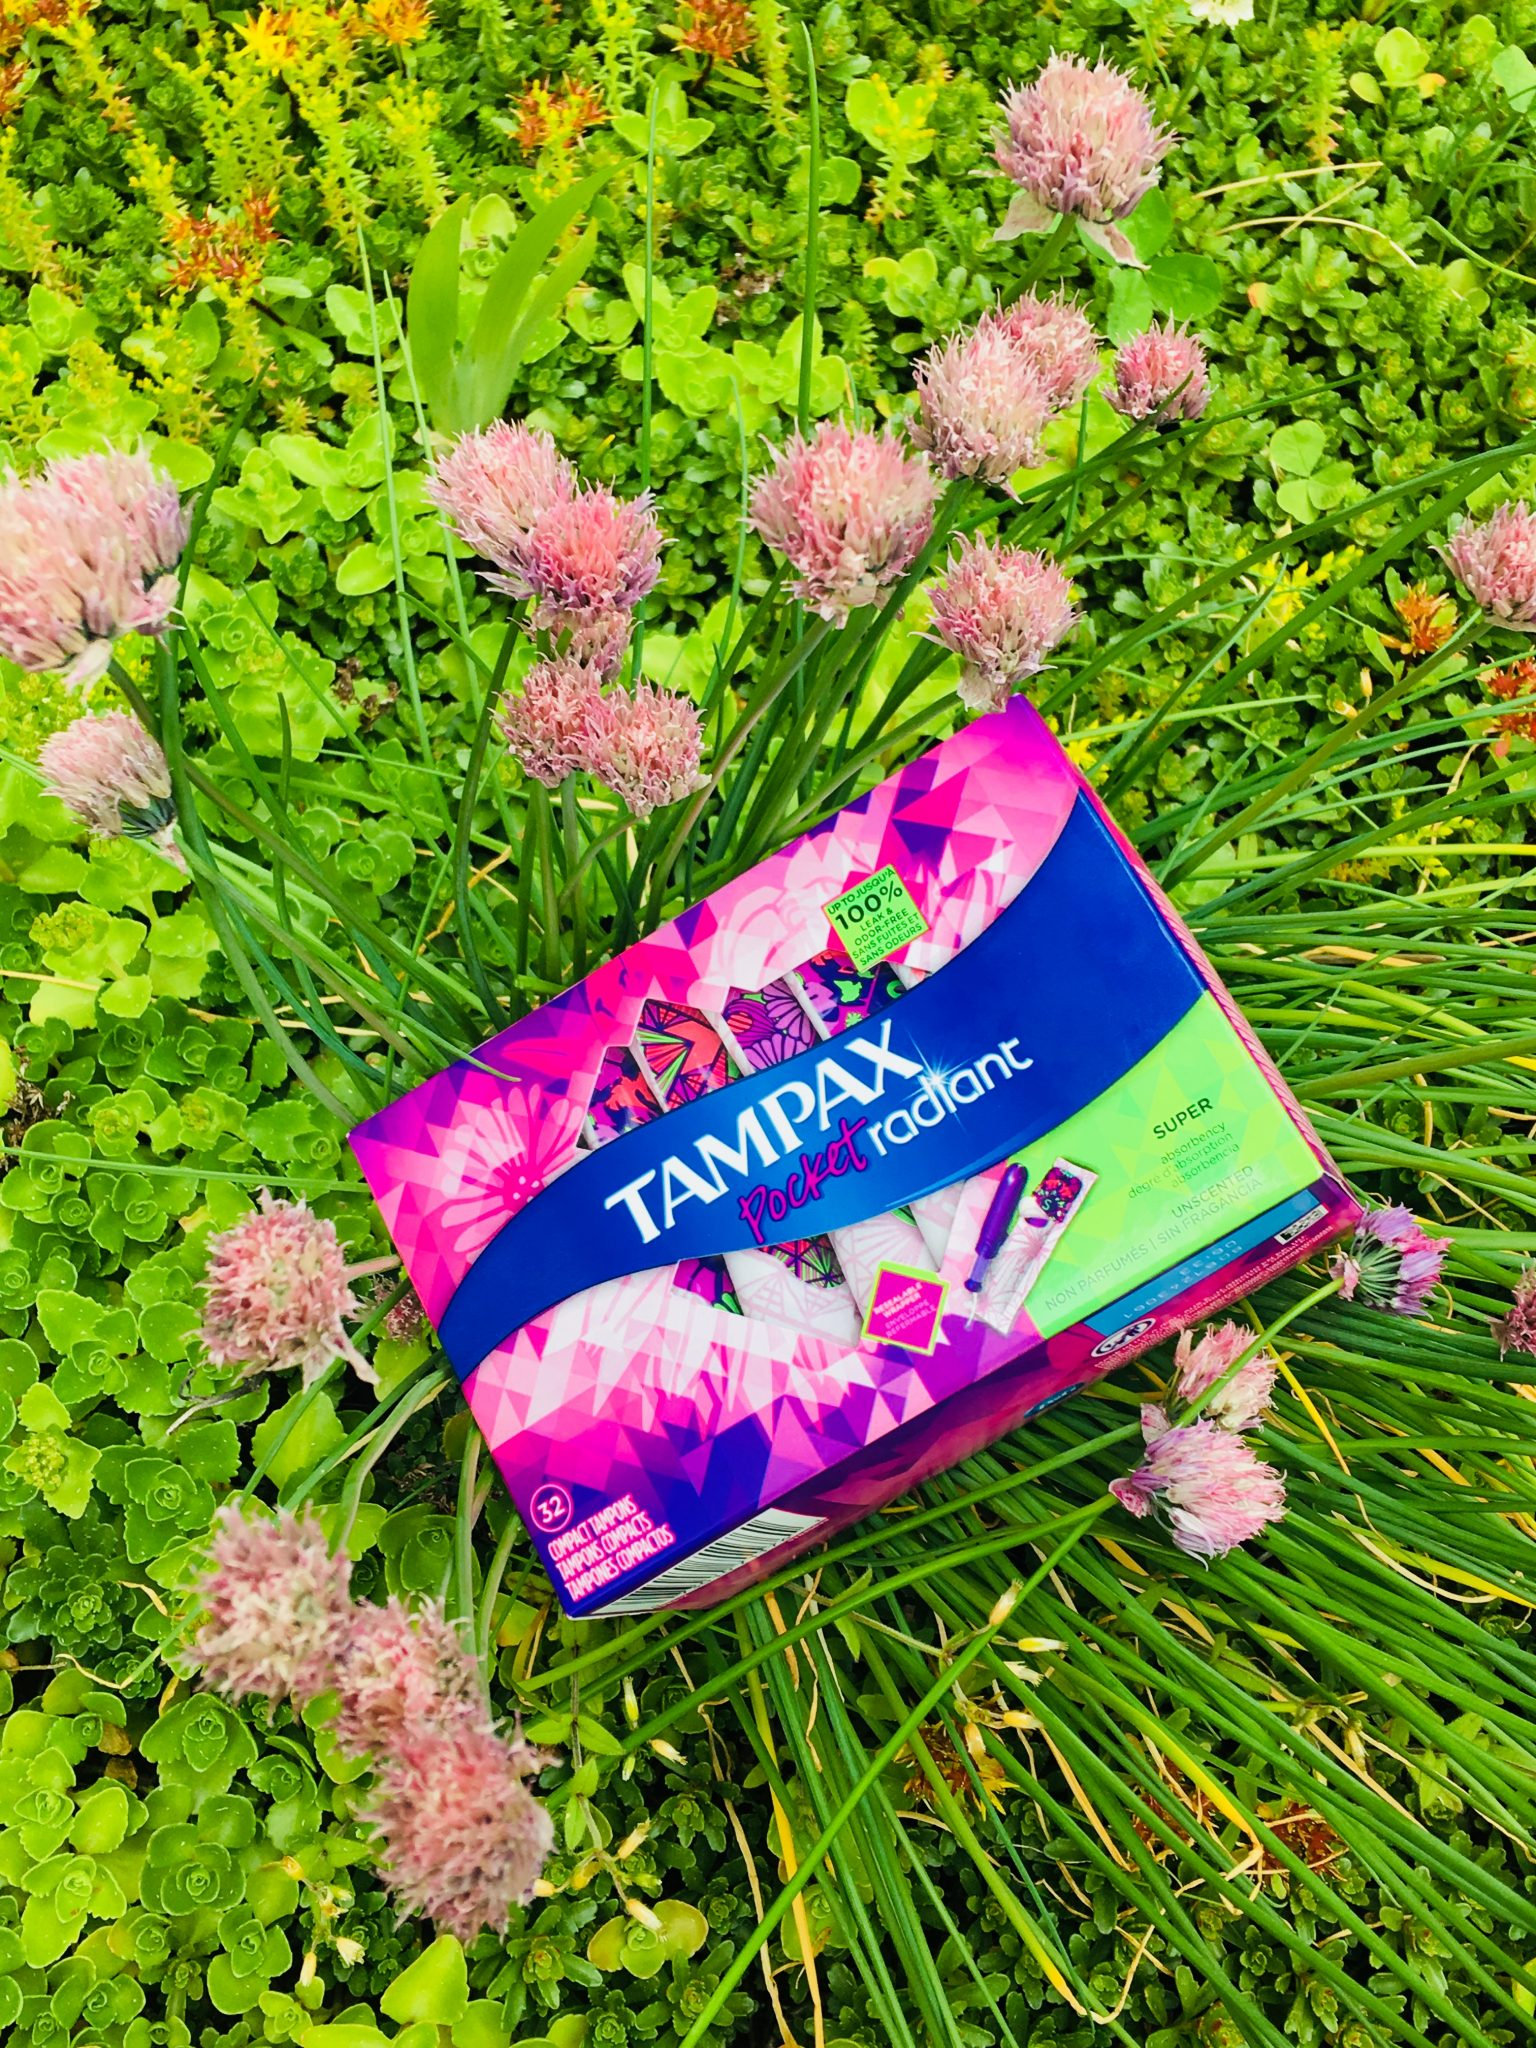 Tampax's Pocket Radiant